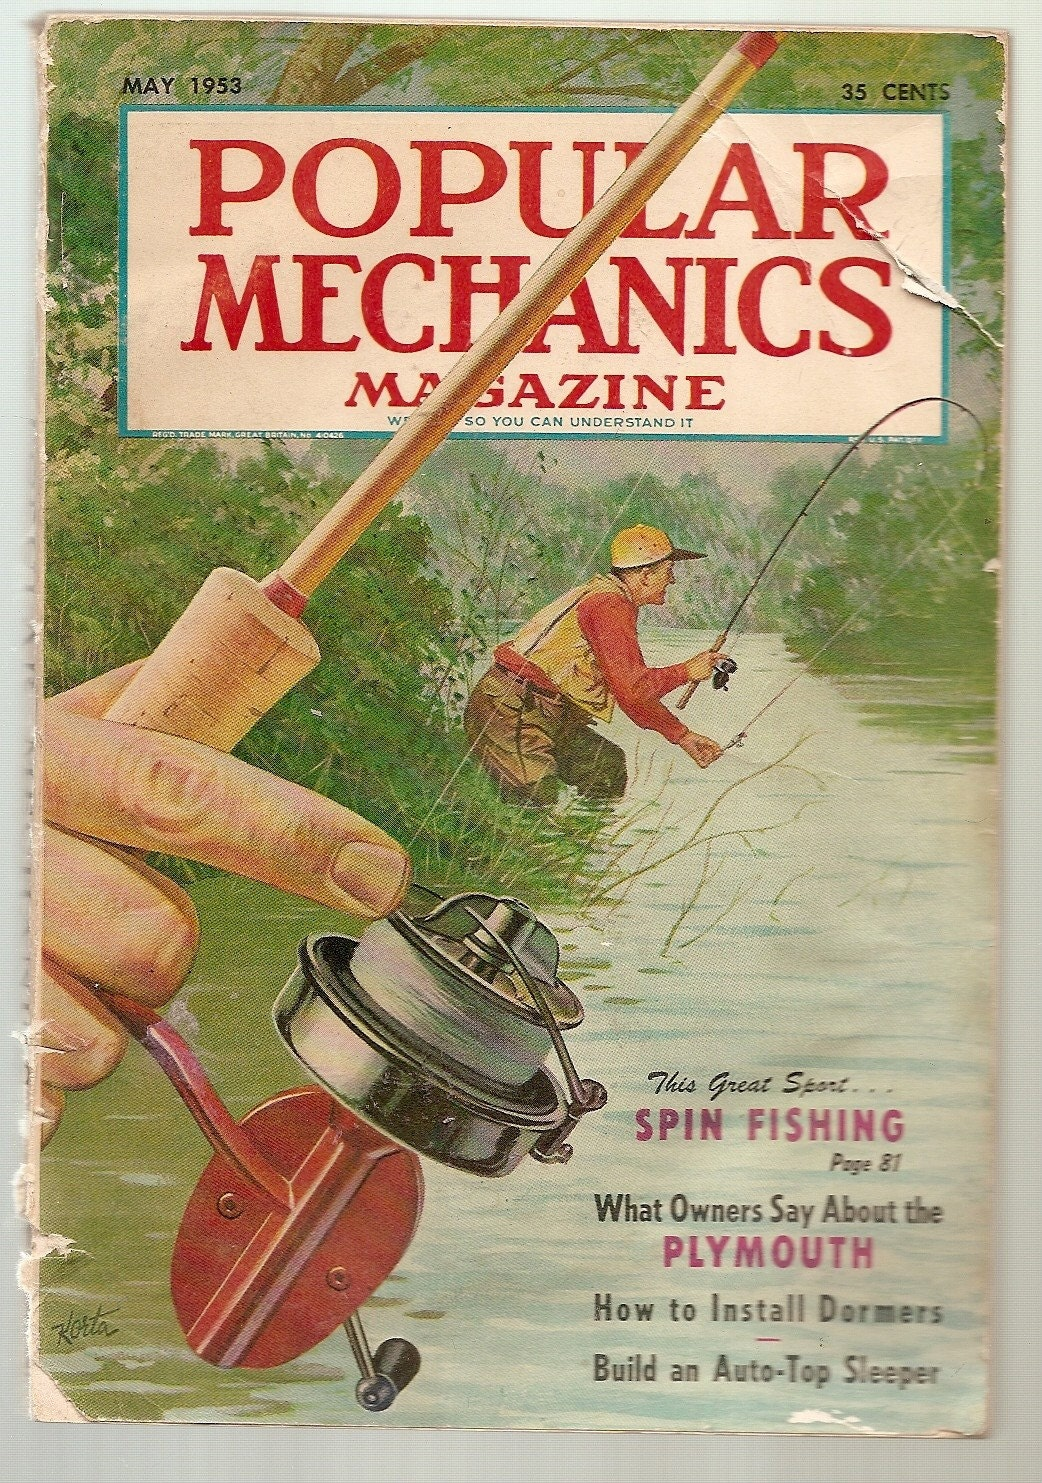 Sale vintage fishing lures popular mechanics by for Vintage fishing tackle